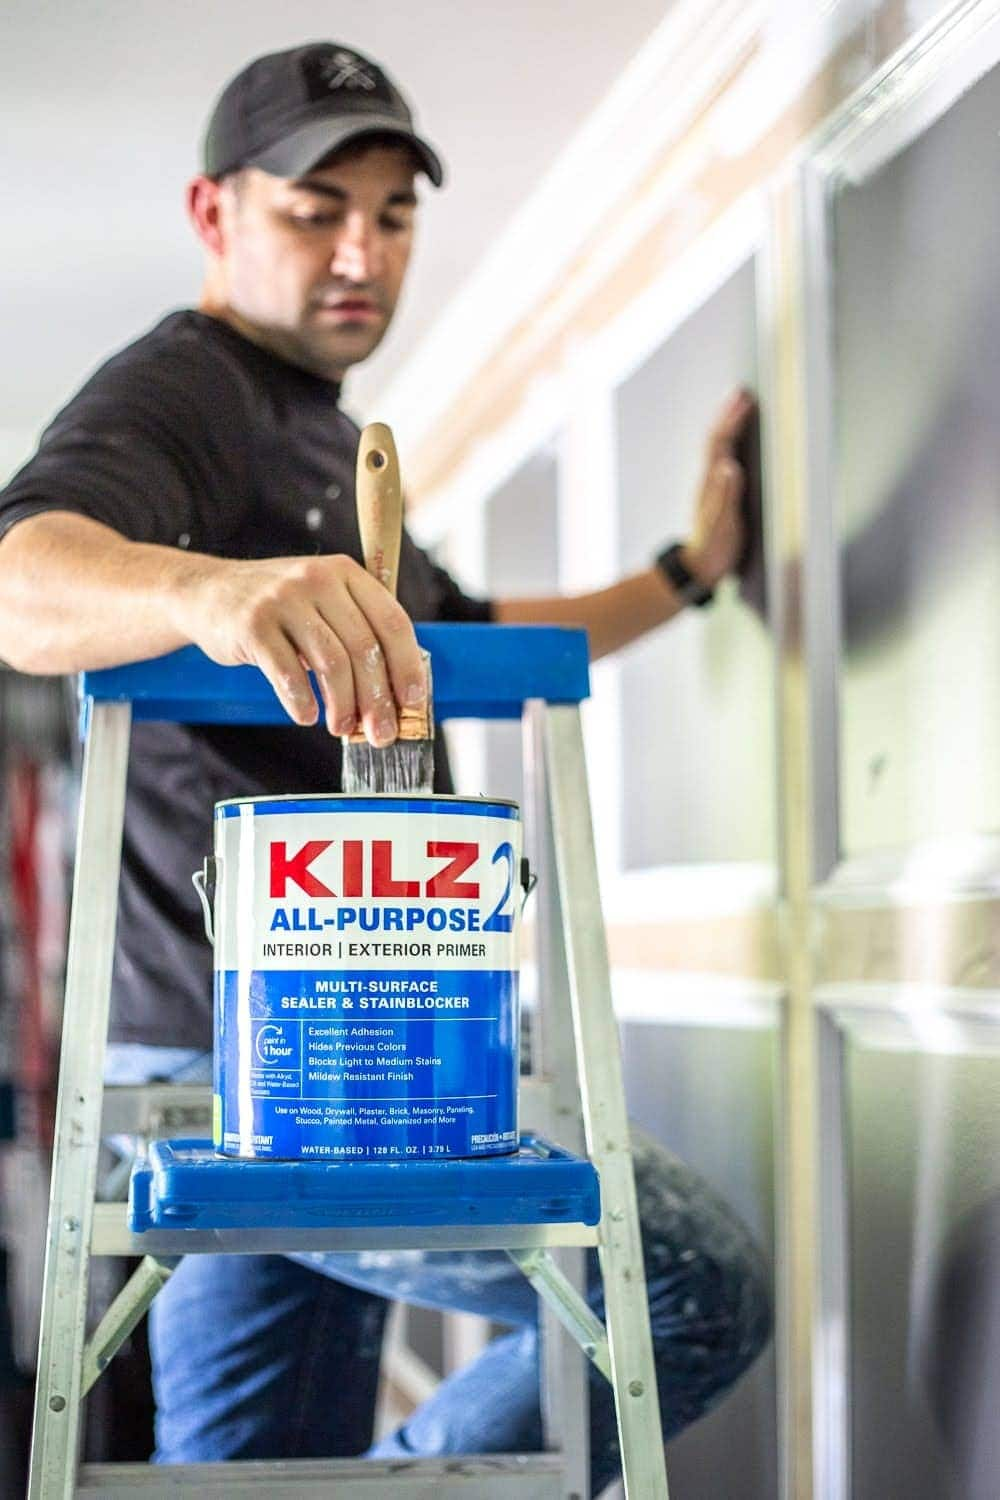 5 rules about primer and paint we wish we had known as beginner DIYers and how to create a paint finish on walls, doors, trim, and moldings that last. | Master Bedroom Refresh with Kilz®